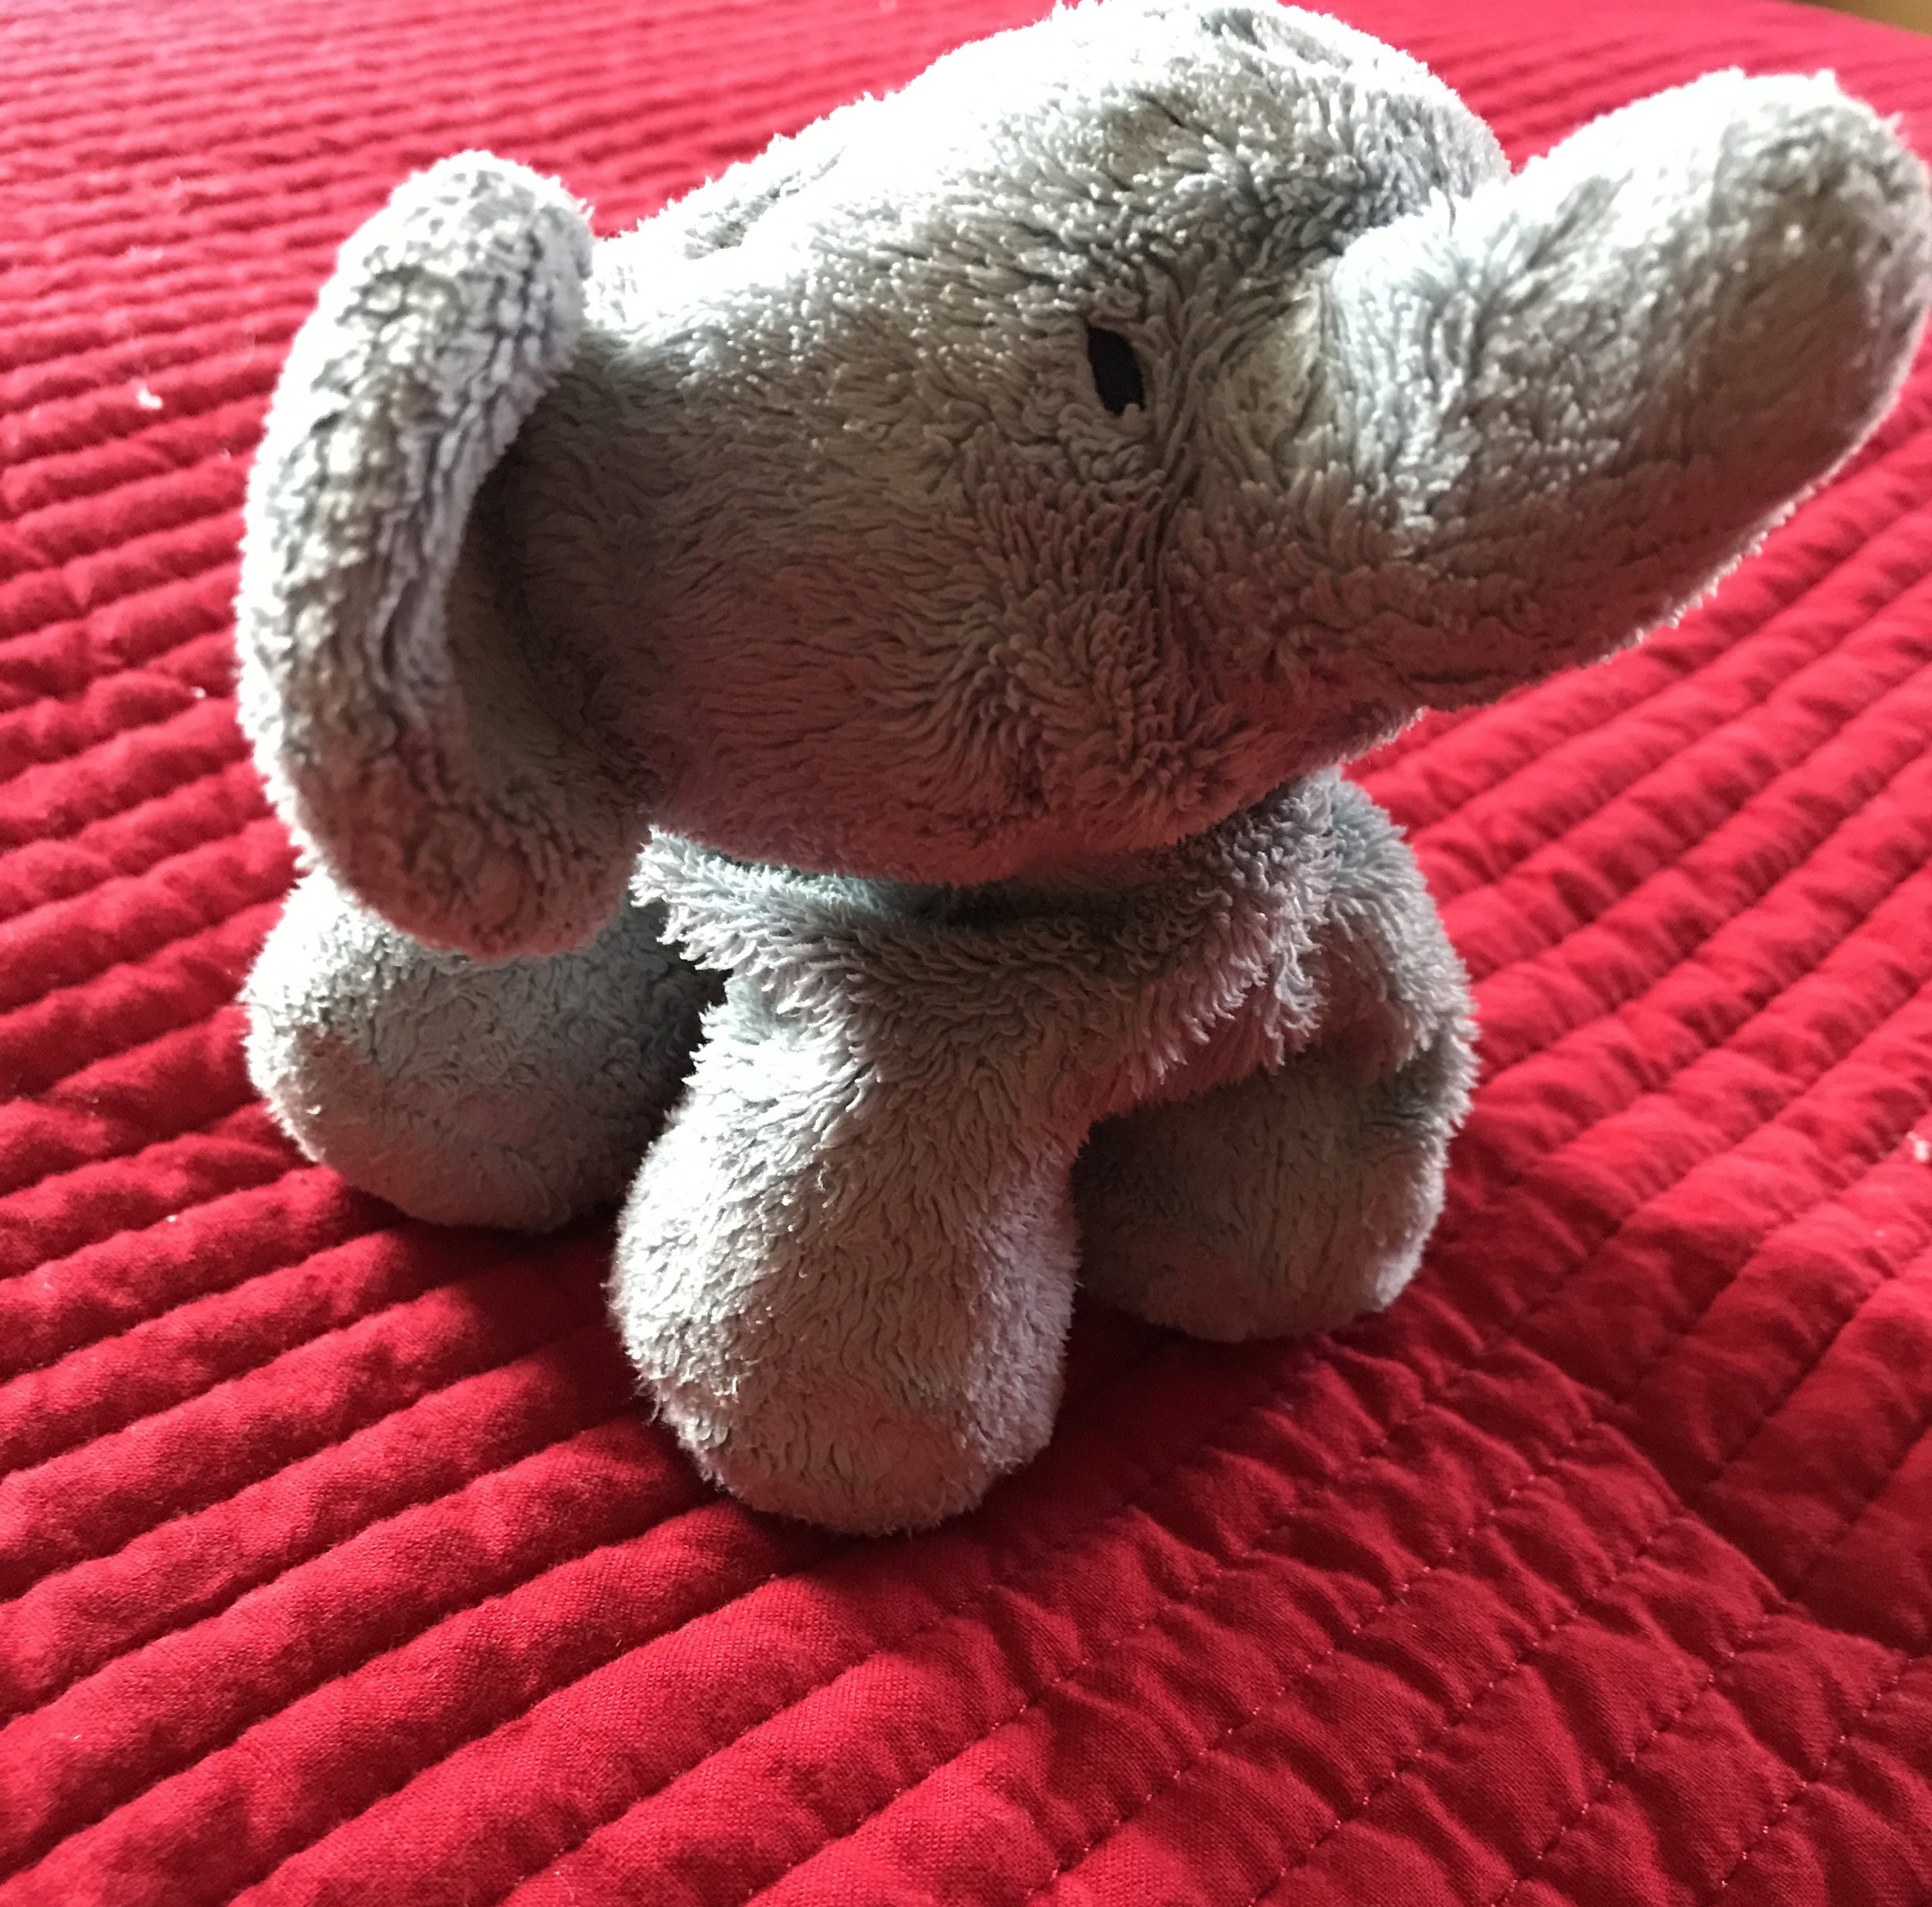 Why Blue Elephant - Meet Blue.  The little blue elephant who has traveled with us everywhere since my son was born.  He and the little guy that loves him so were the inspiration for our name.